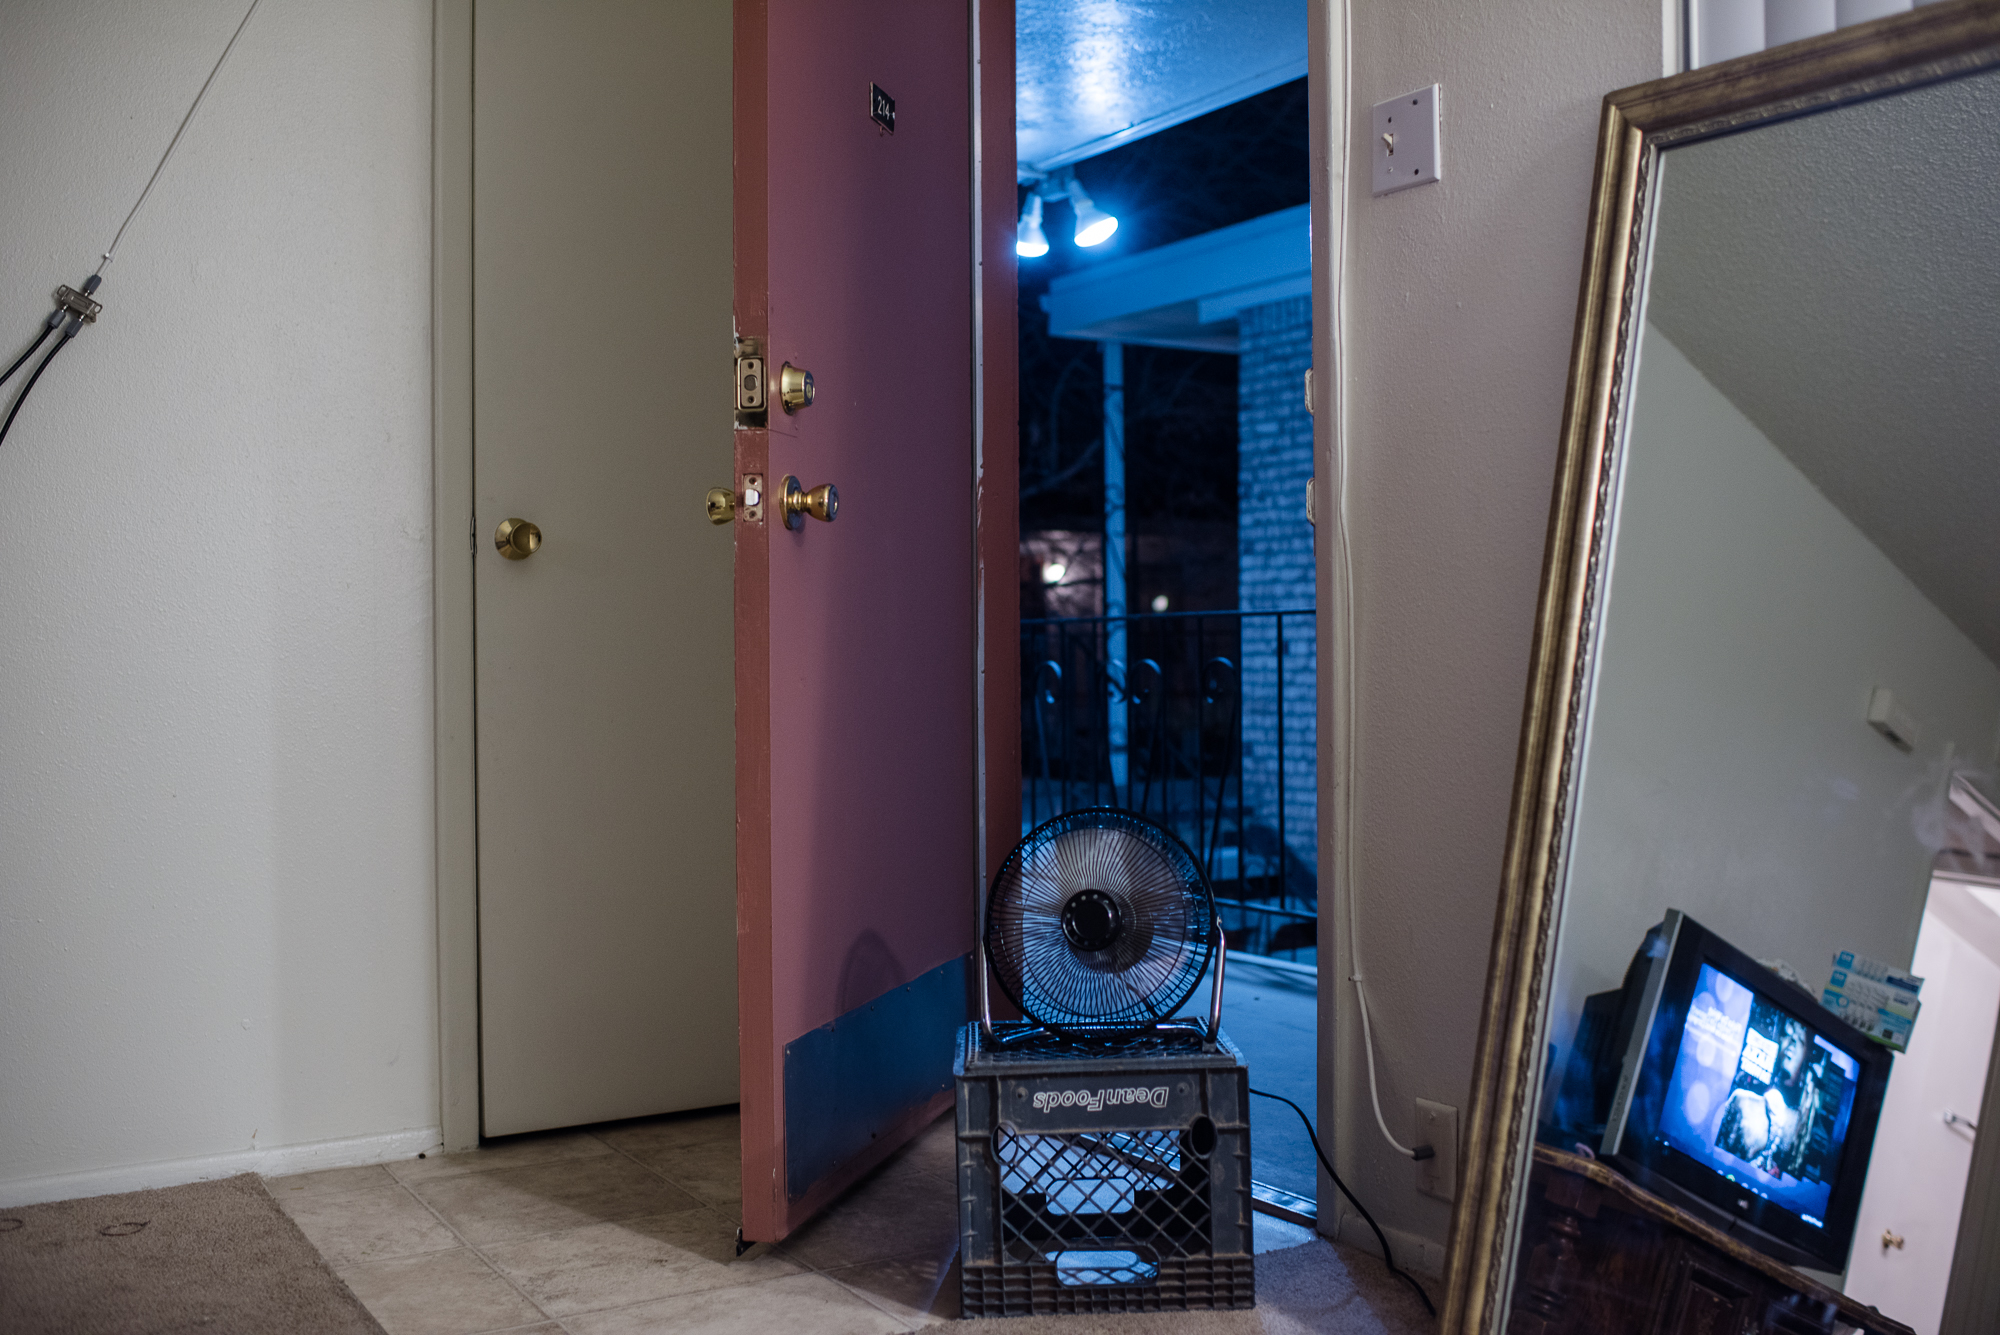 A fan and open door on a summer day at Alysia's apartment,